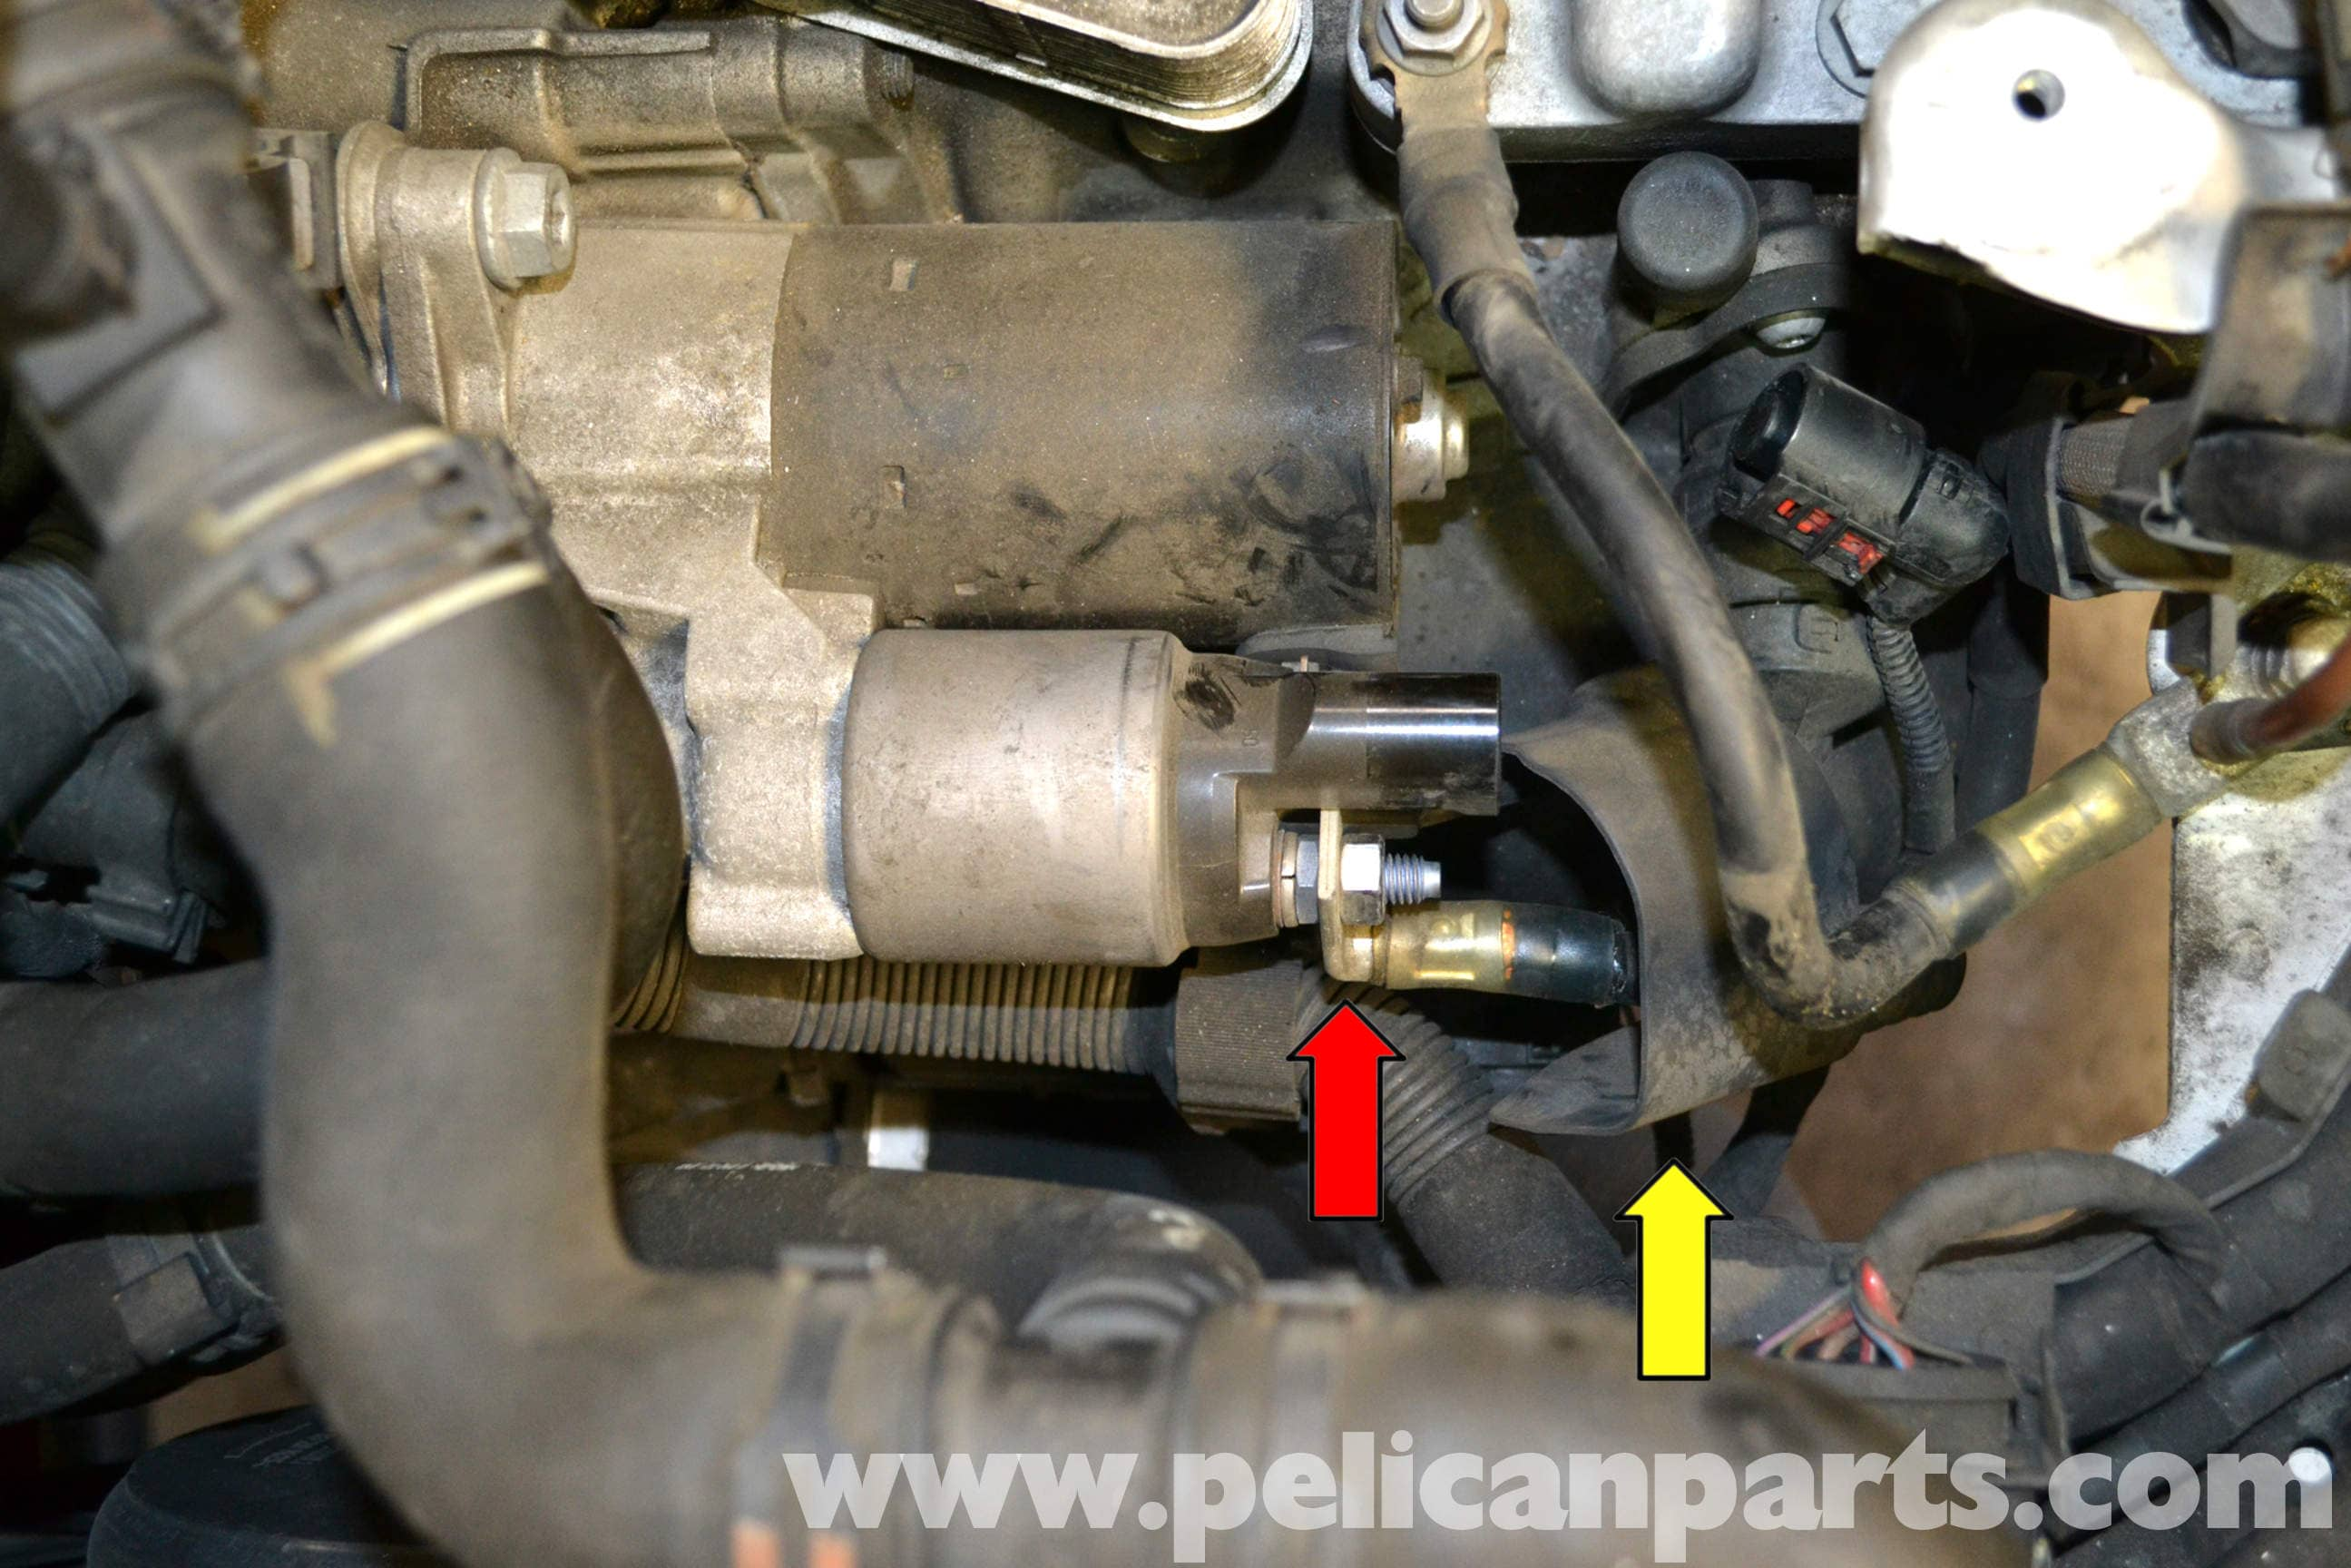 vw polo 2002 wiring diagram obd2a to obd2b distributor volkswagen golf gti mk v starter replacement (2006-2009) - pelican parts diy maintenance article